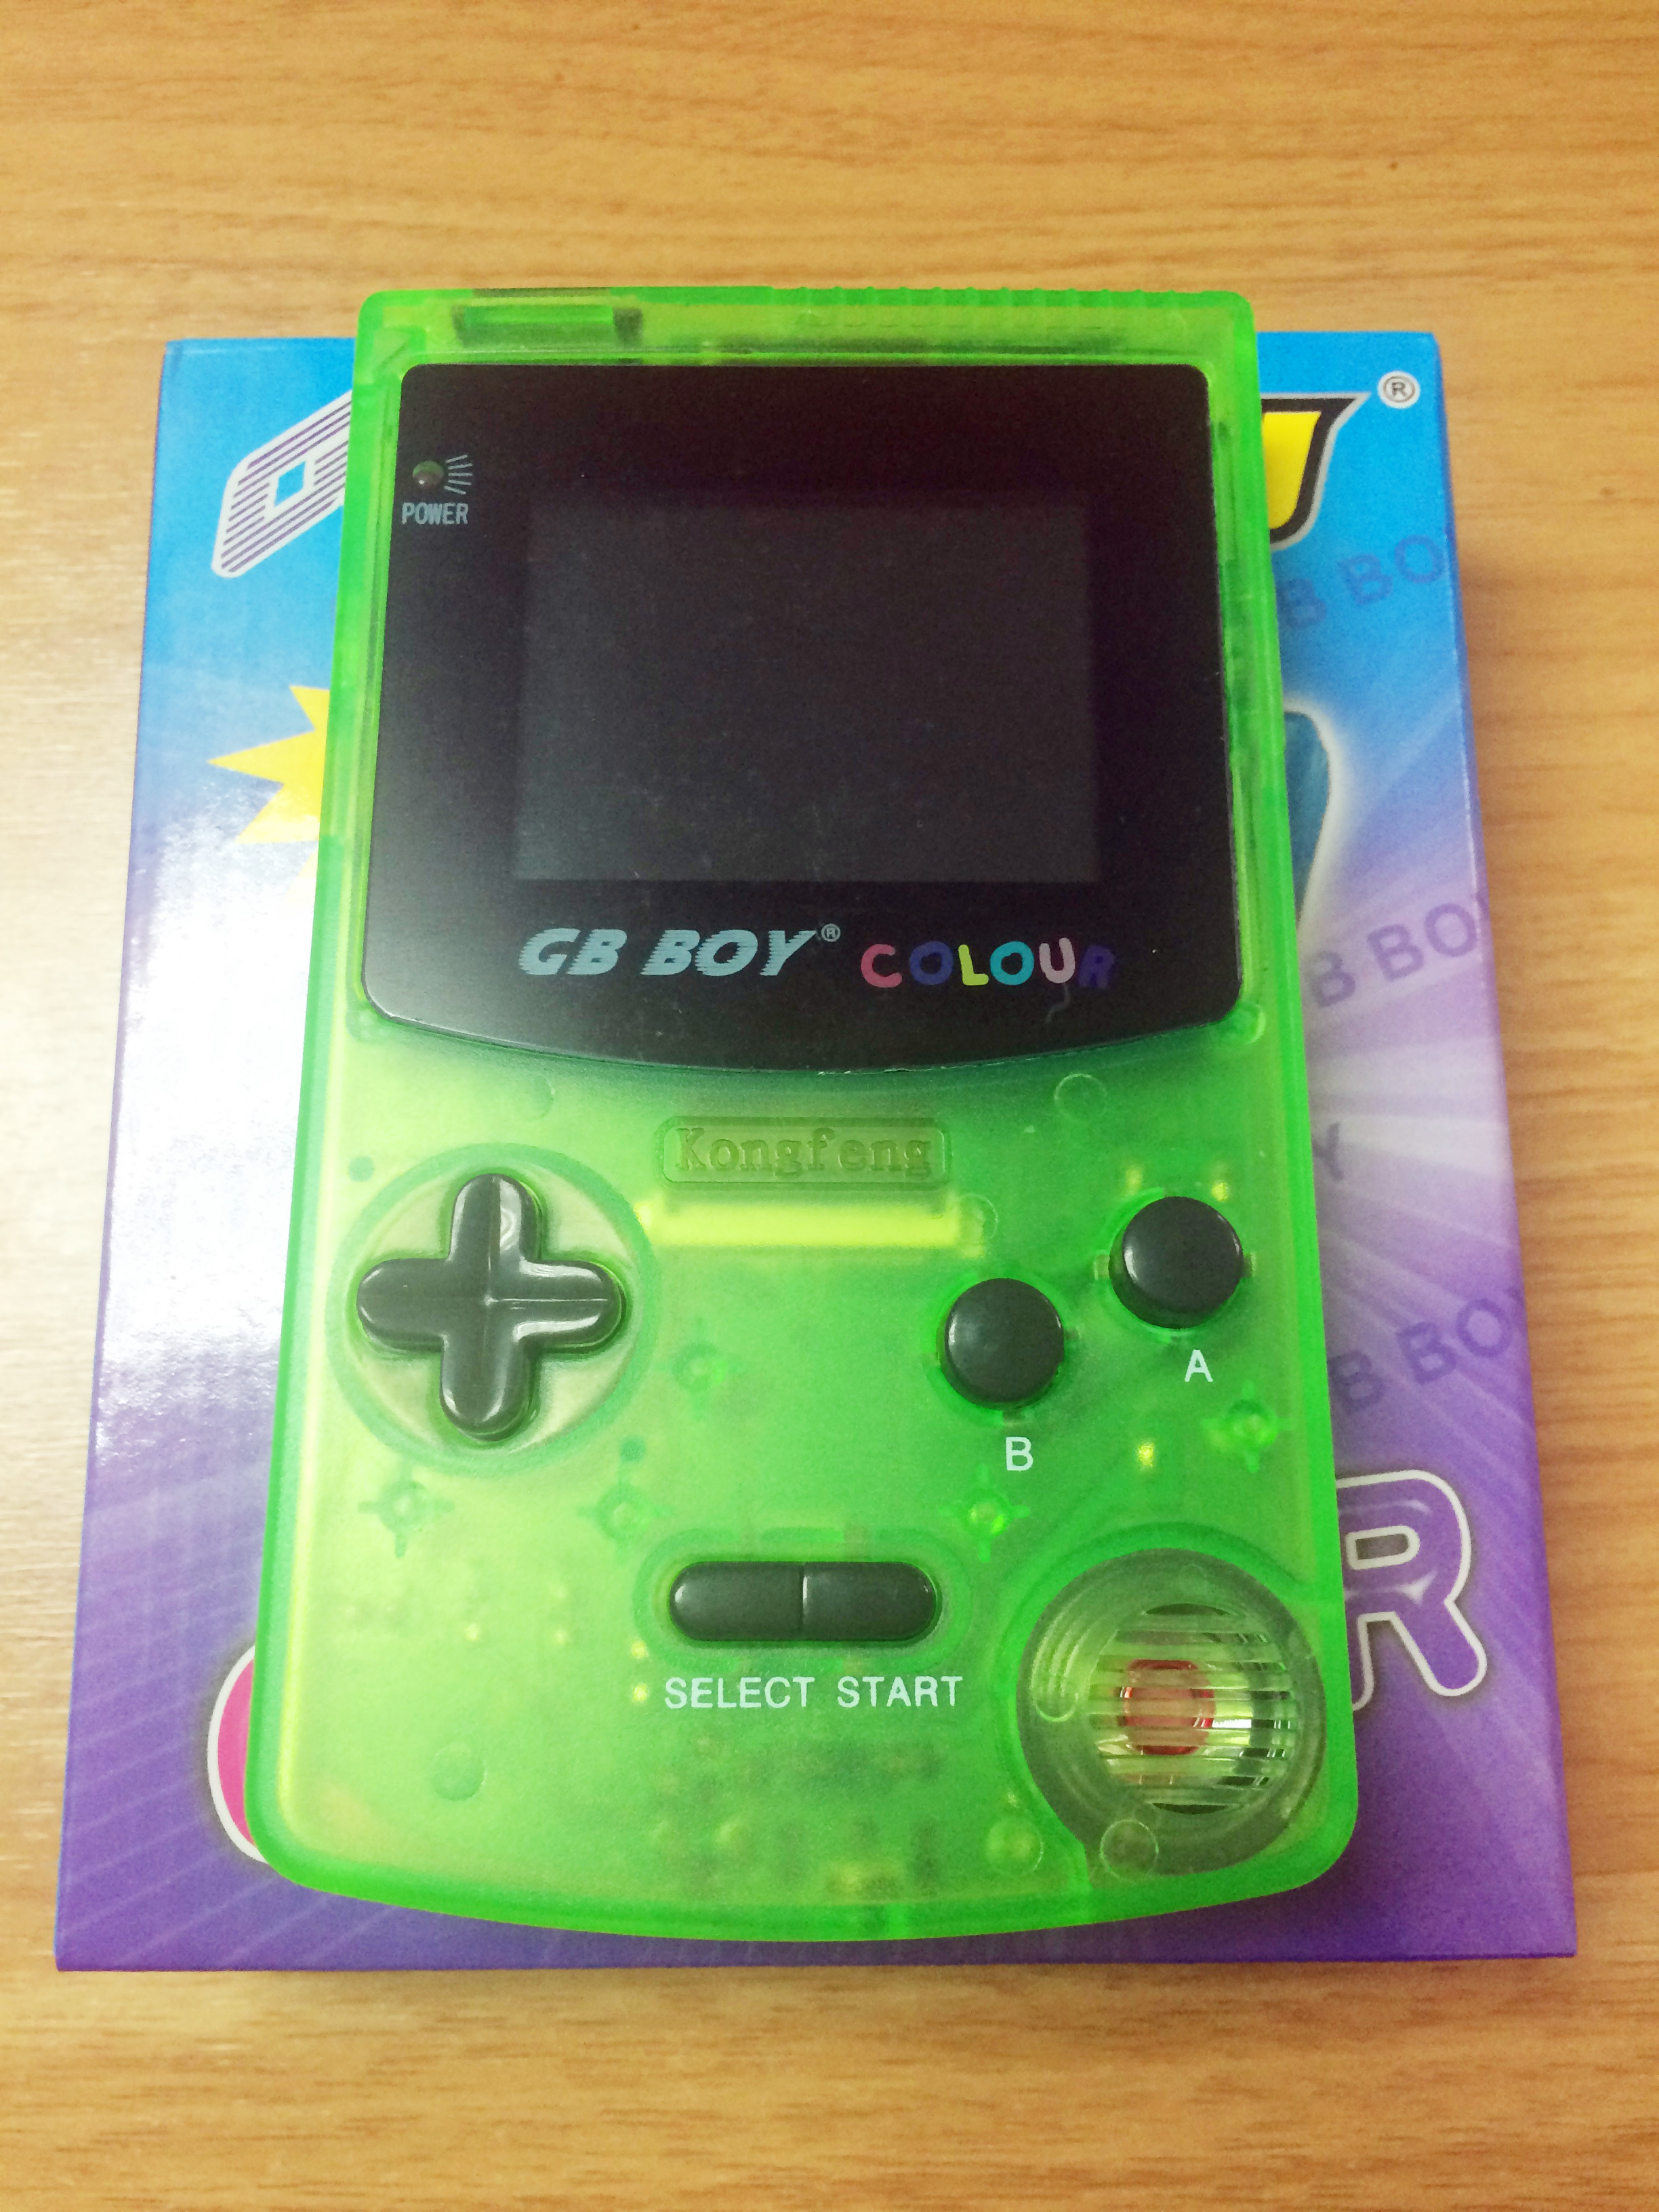 Game boy color online games - 2017 Hot Sale Gb Classic Boy Color Pocket Color Game Console 2 7 Game Player With Backlit 66 Built In Games